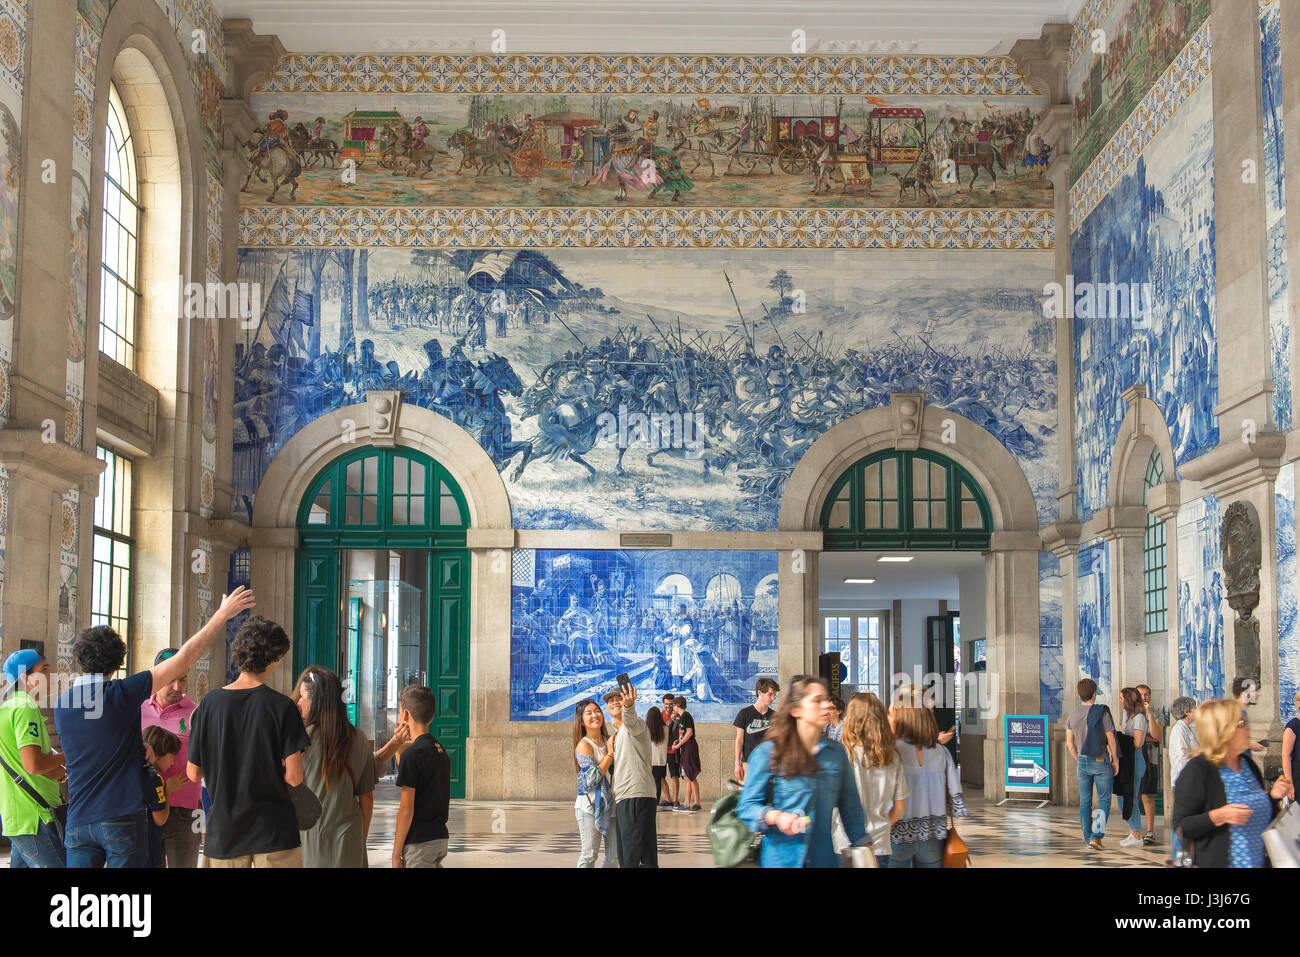 Train station Porto Portugal, the entrance hall of the Sao Bento train station richly decorated with blue azulejo - Stock Image